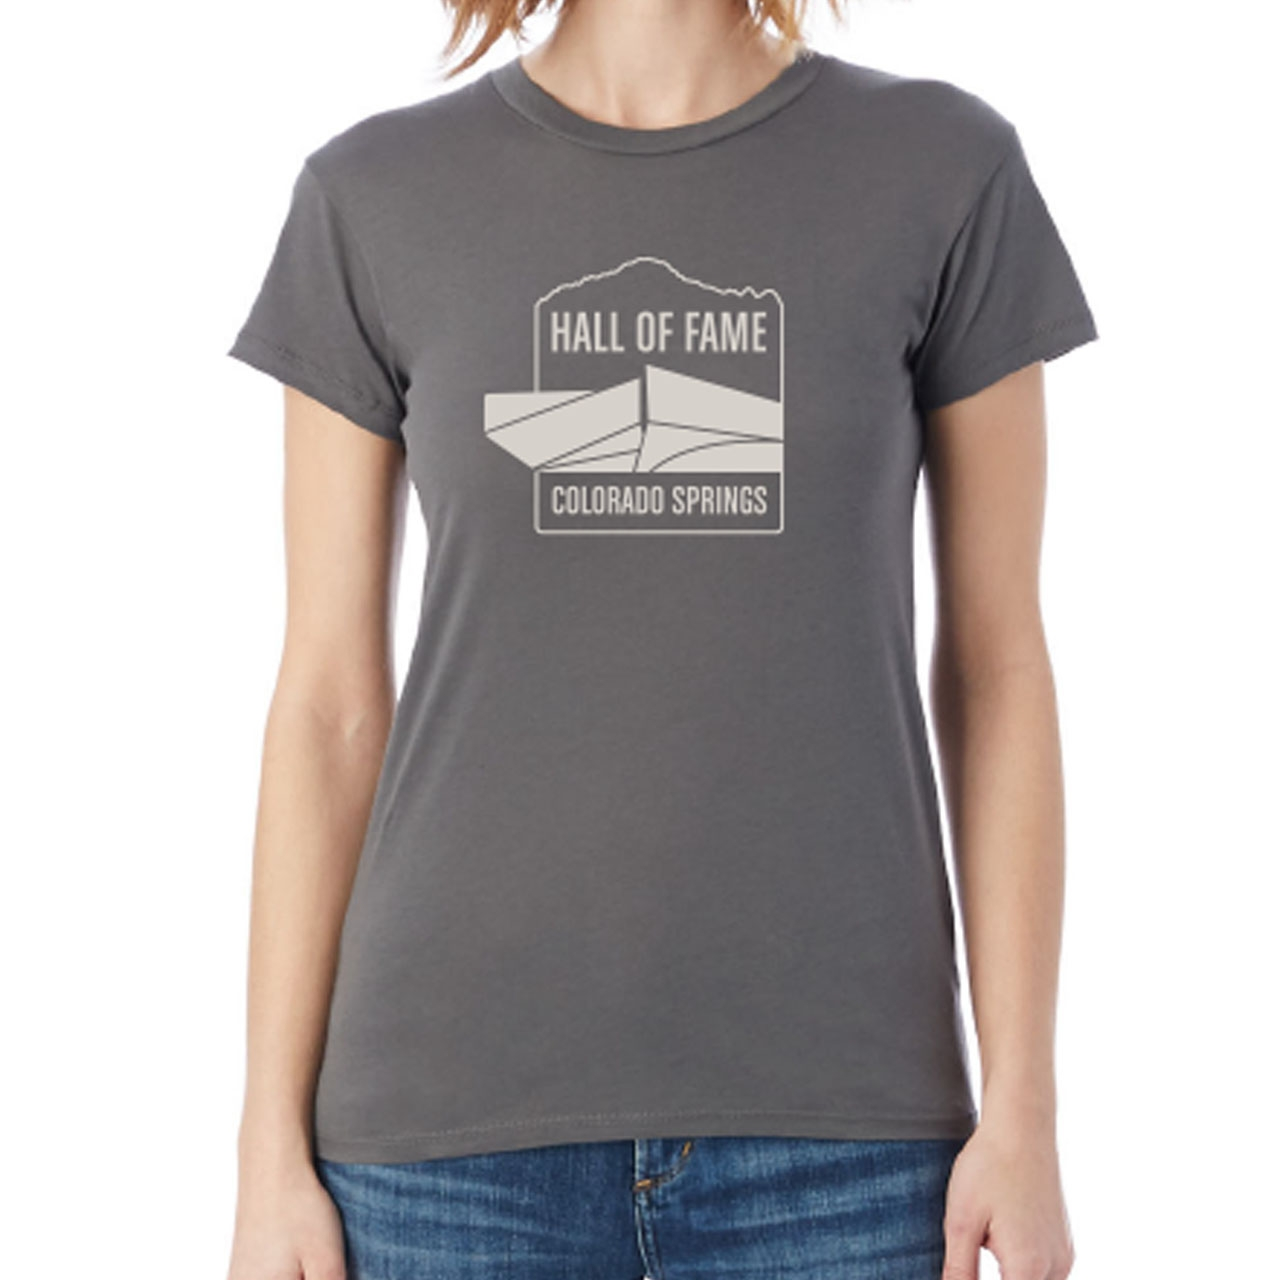 LADIES HALL OF FAME T-SHIRT